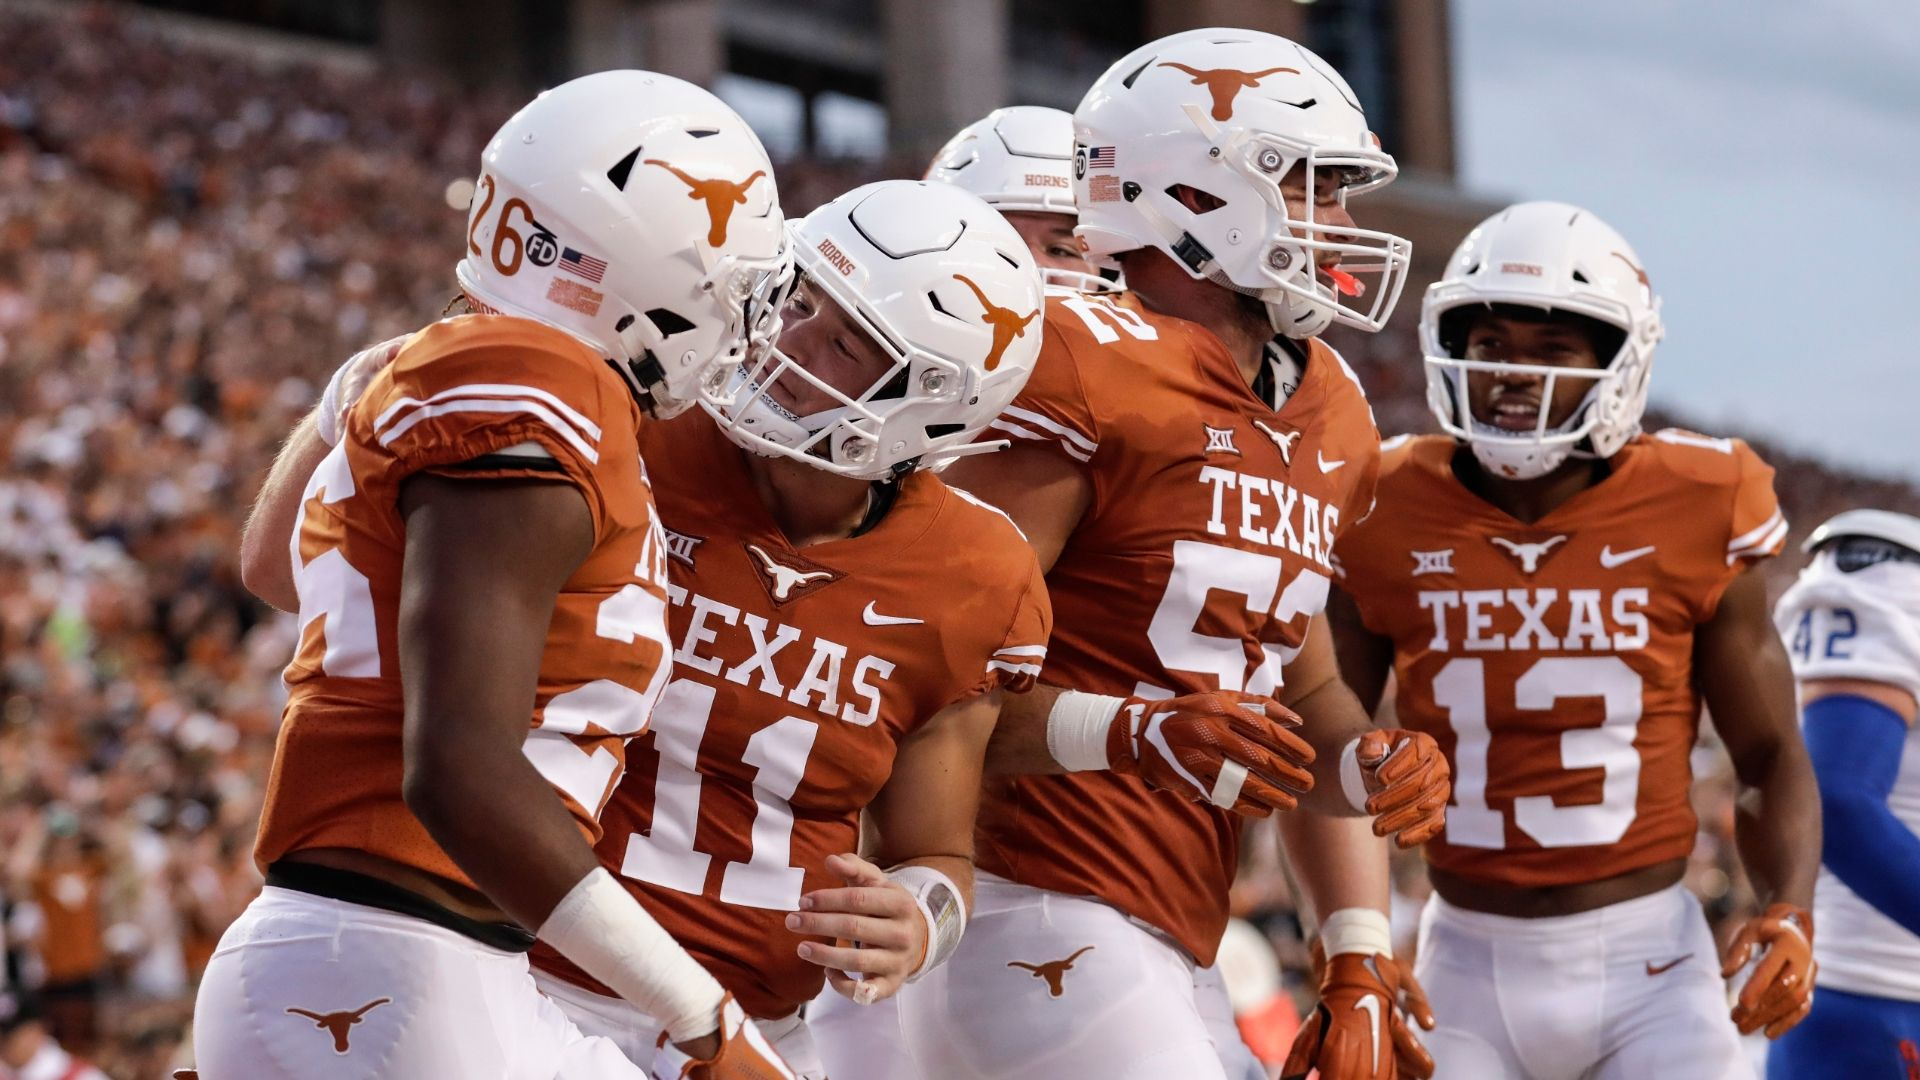 Texas look to reclaim Lone Star State against TCU